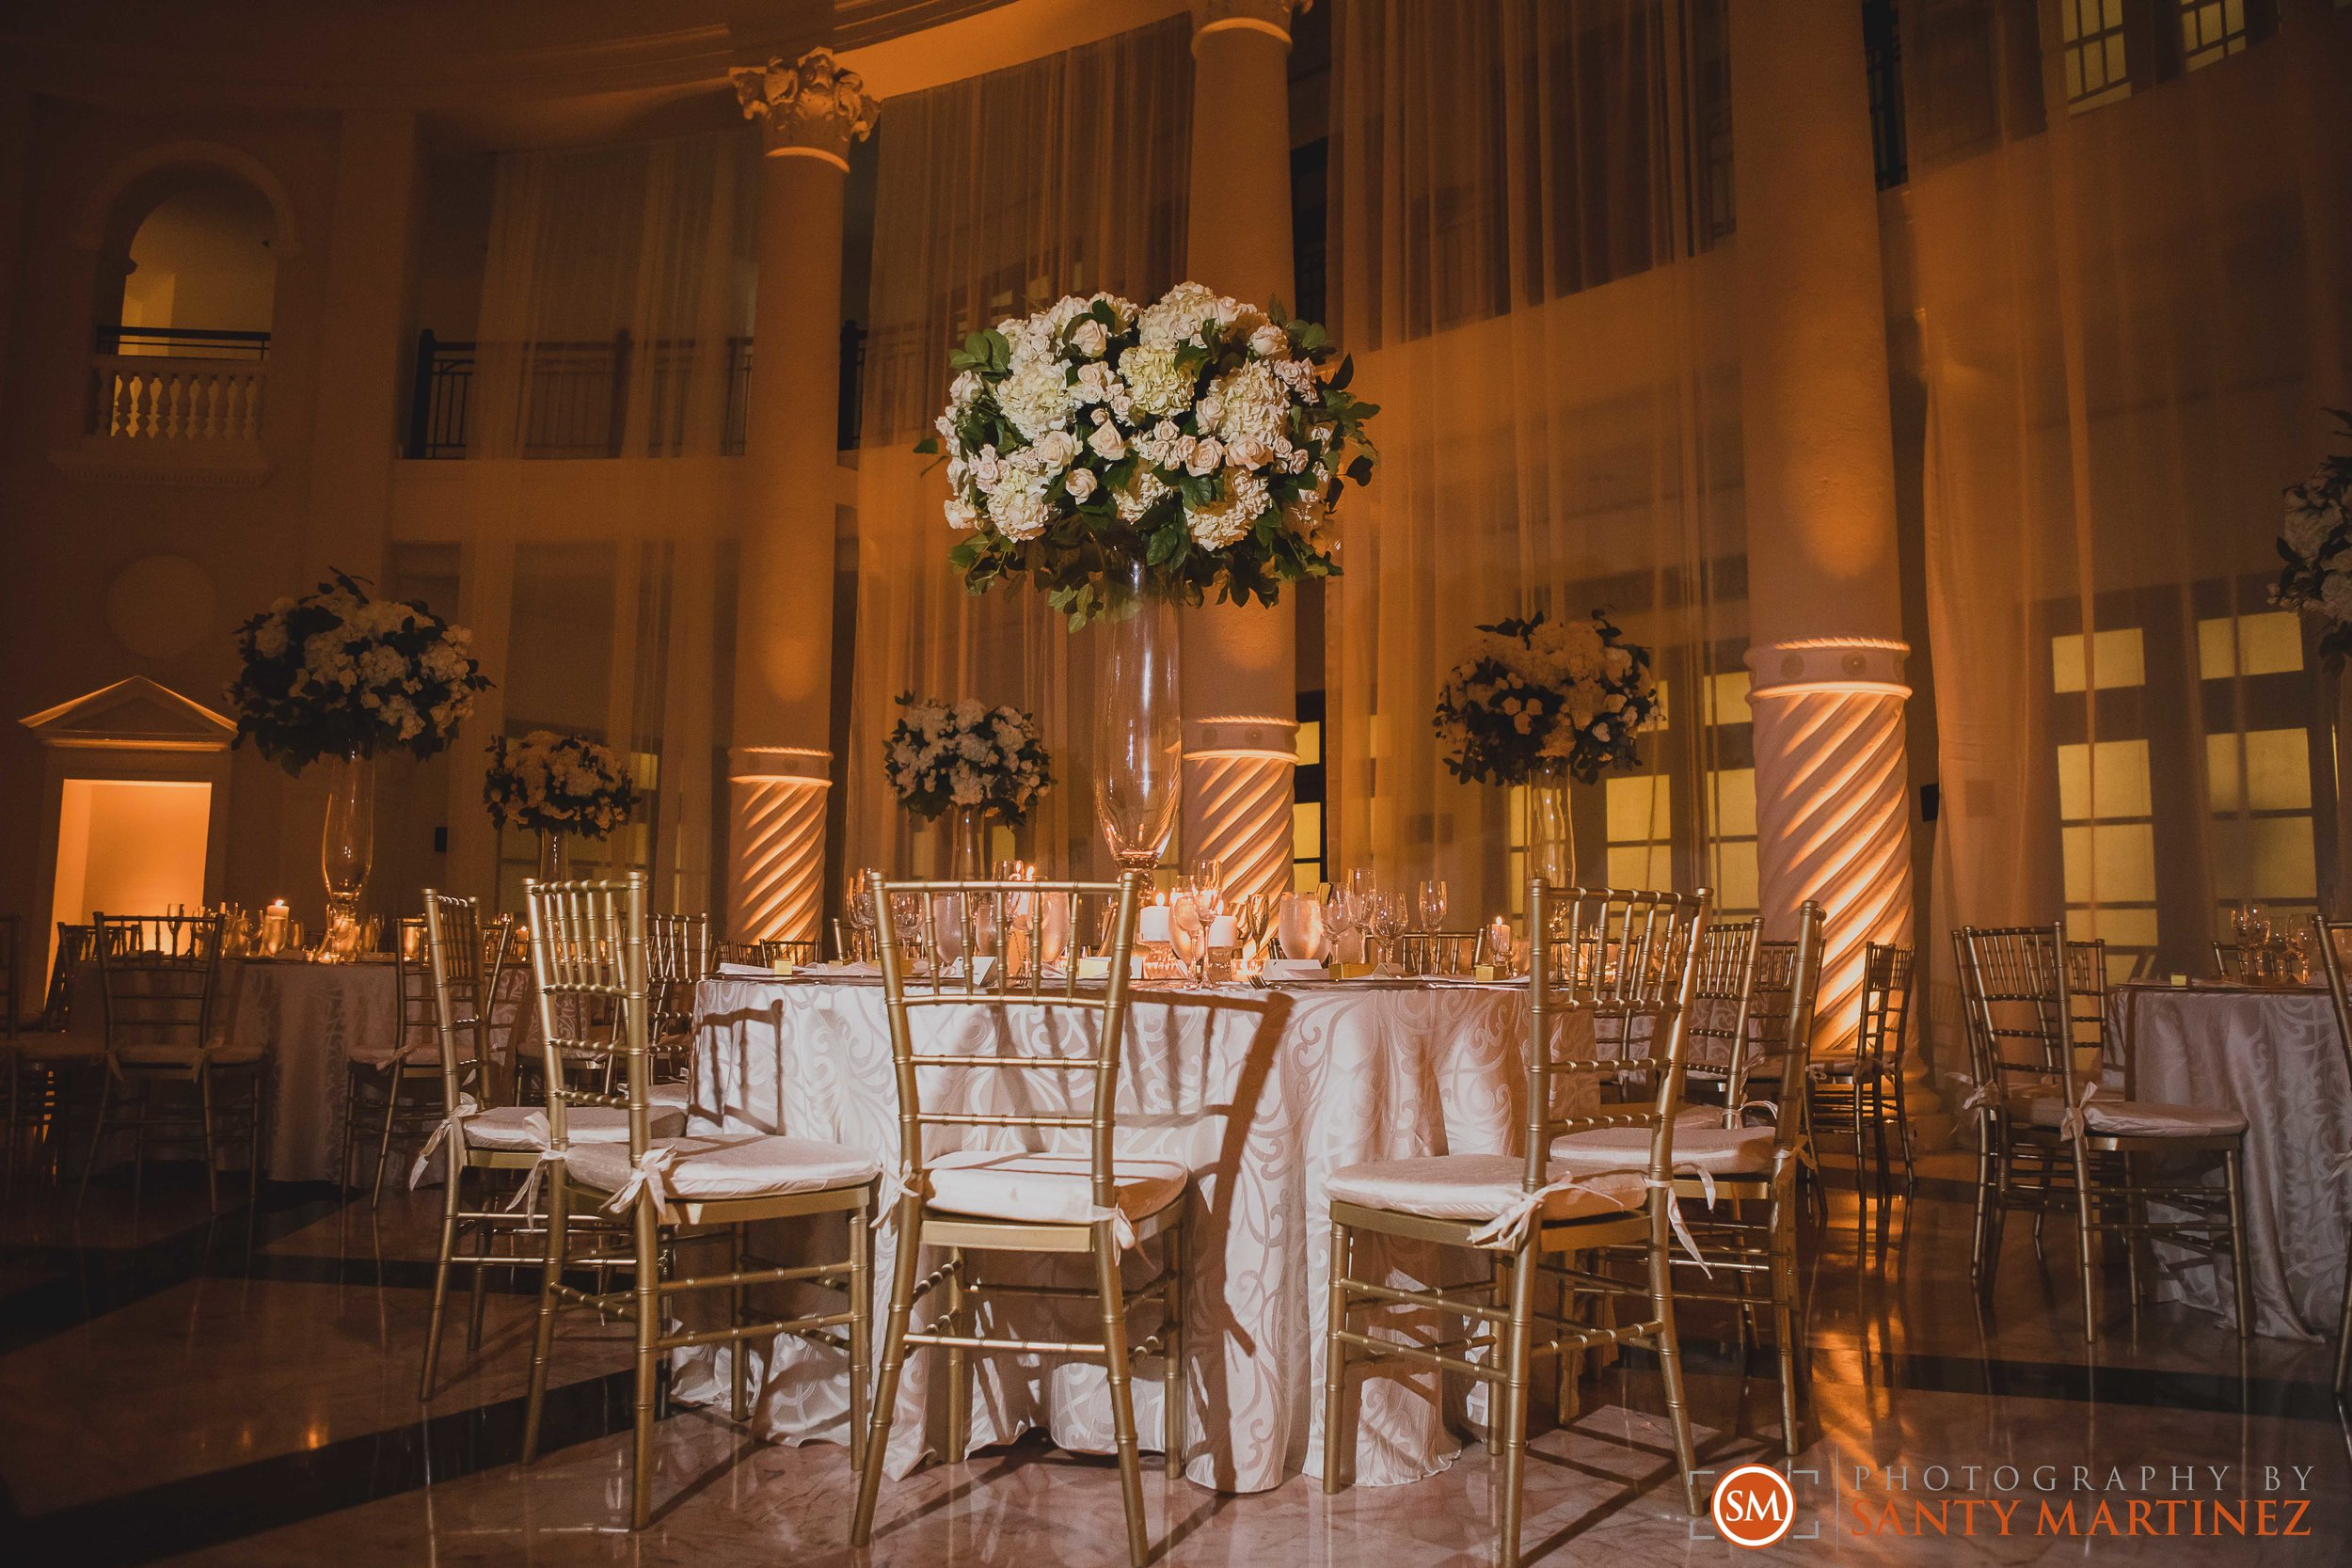 Wedding - Hotel Colonnade Coral Gables - Santy Martinez Photography-21.jpg